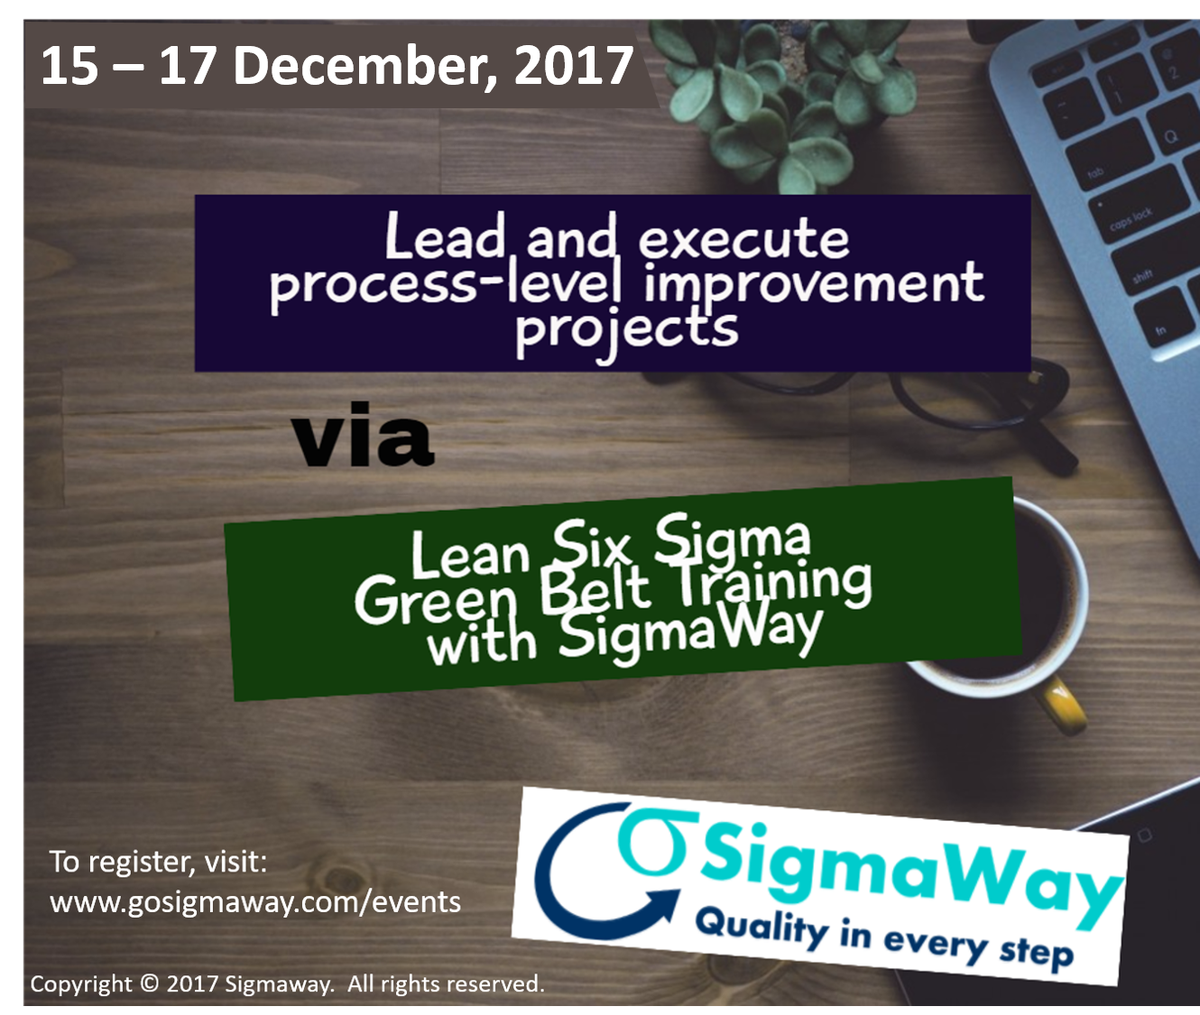 Sigmaway llc sigmawayllc twitter for details httpgosigmawayeventslean six sigma training43 green belt training delhi india 15 december 17 december 2017ml picitter xflitez Gallery